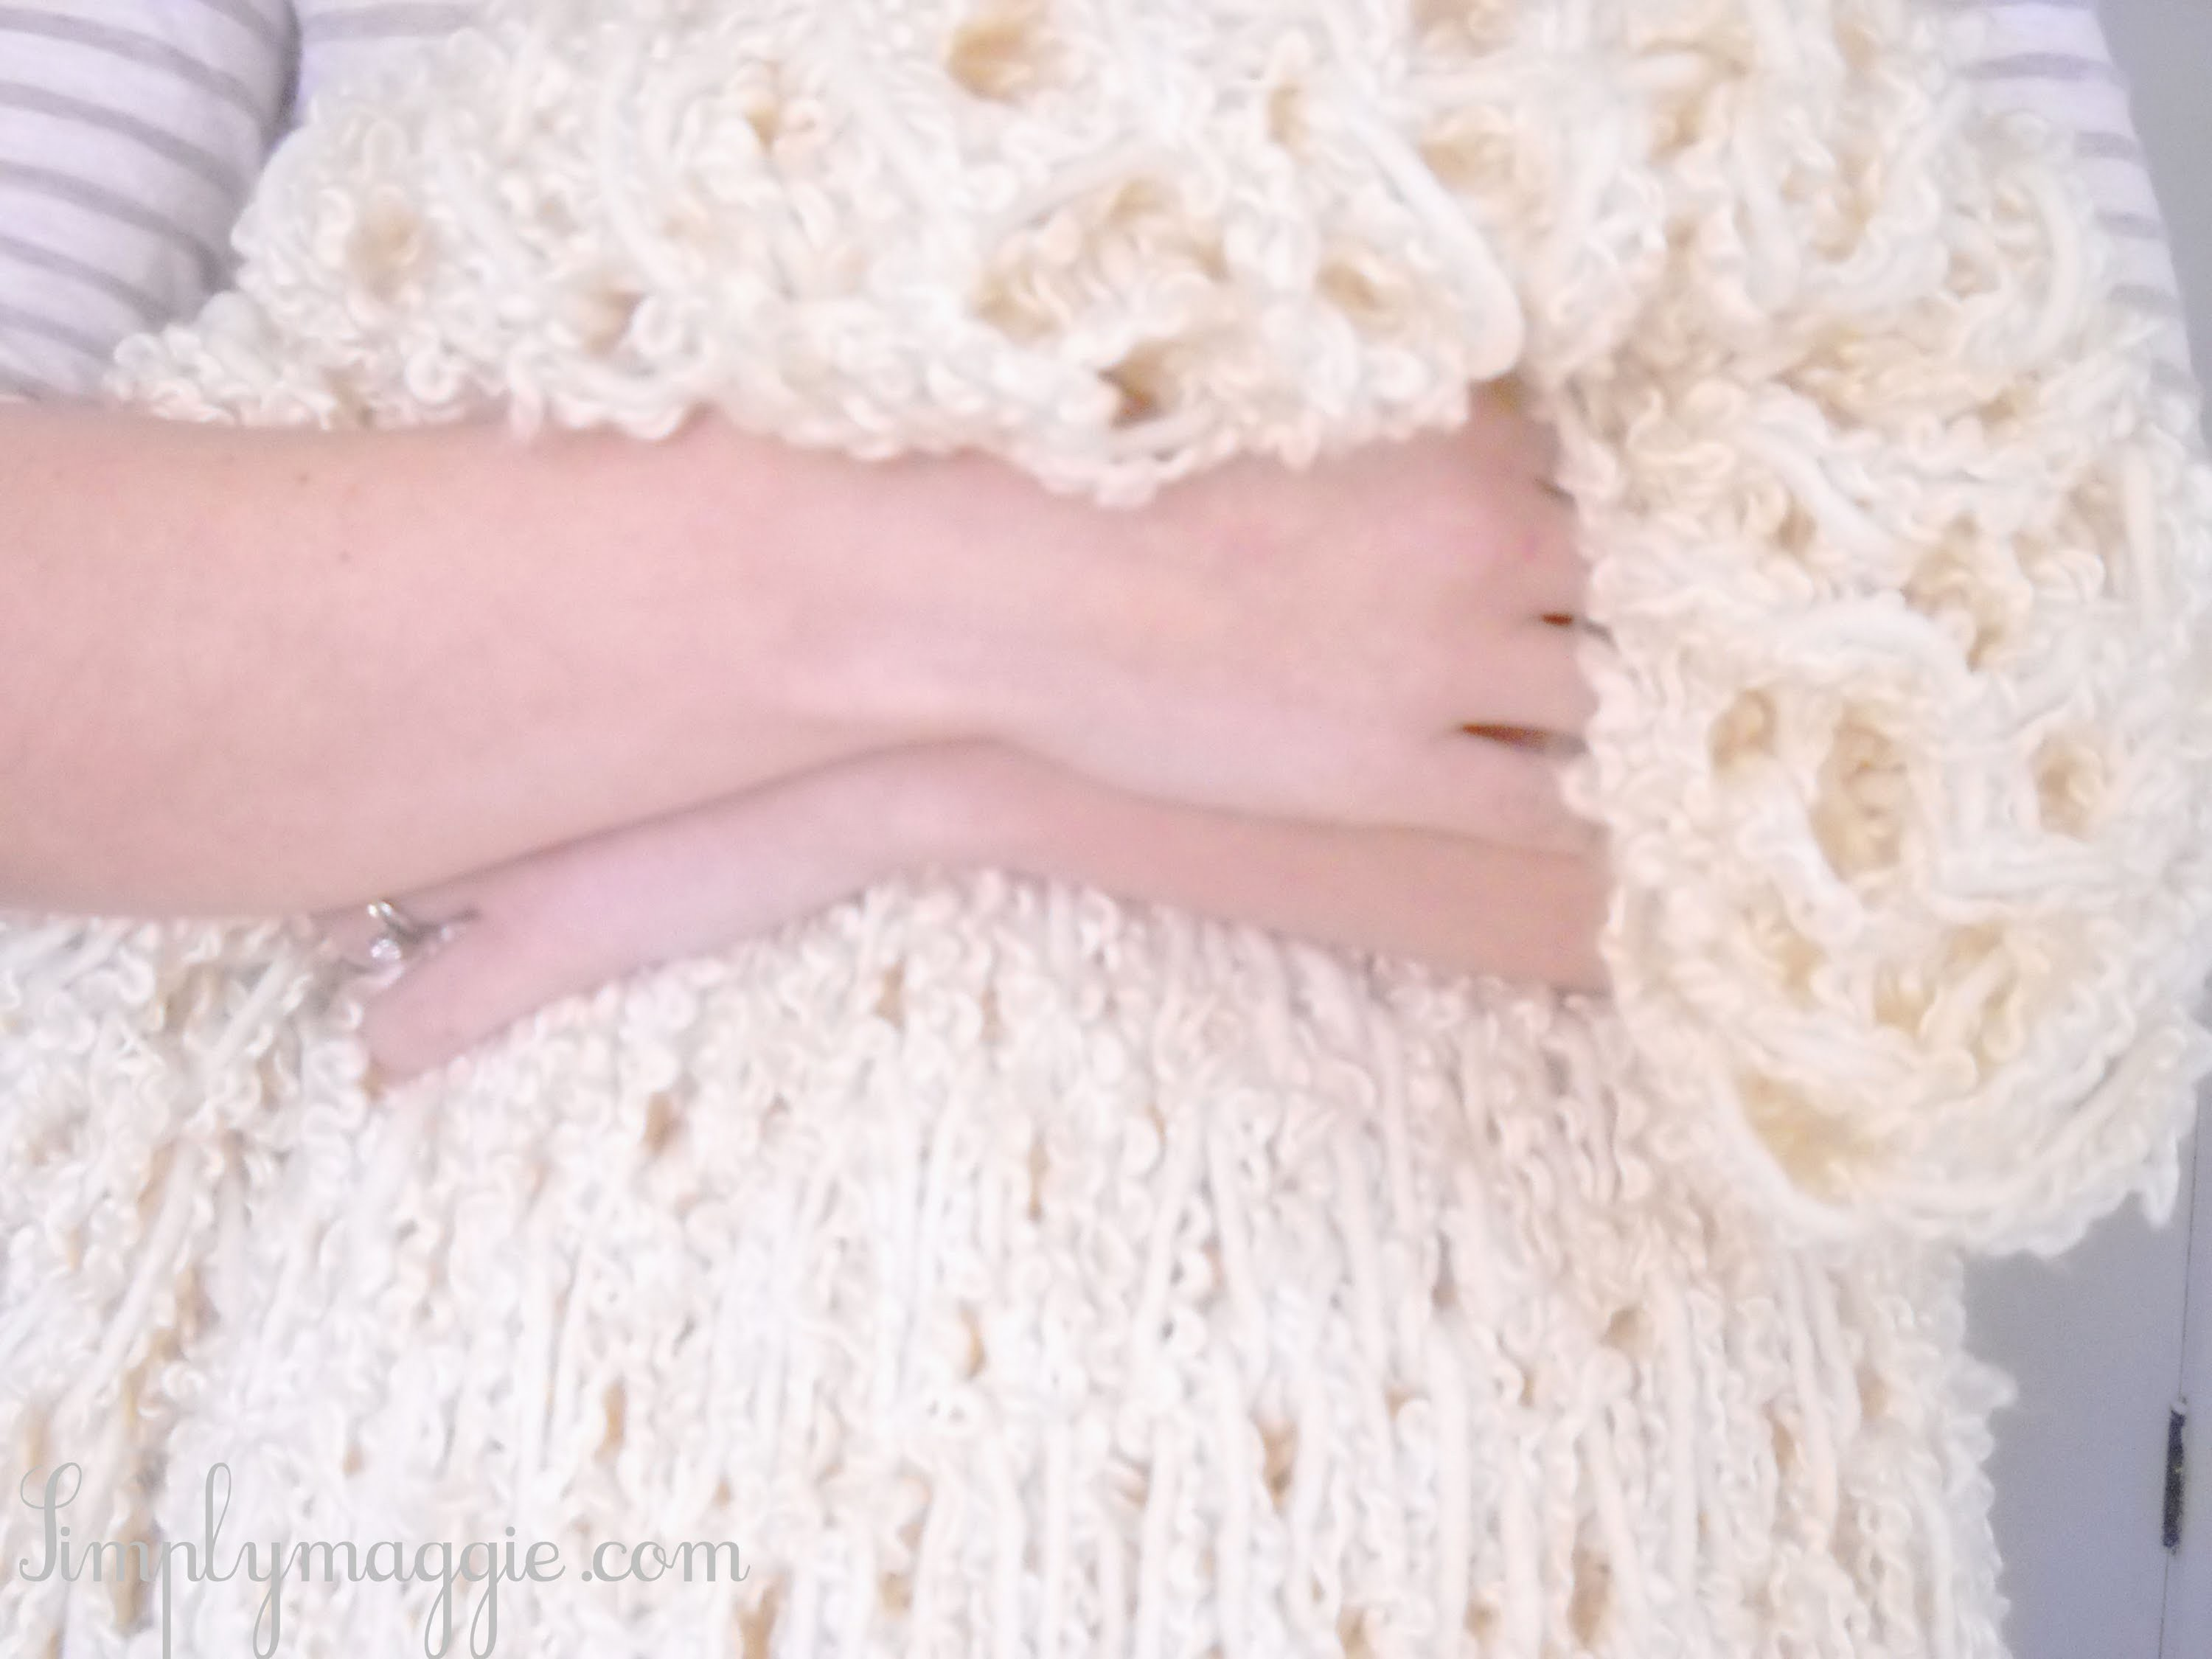 How to Arm Knit a Blanket in One Hour - The Original Tutorial - With Simply Maggie